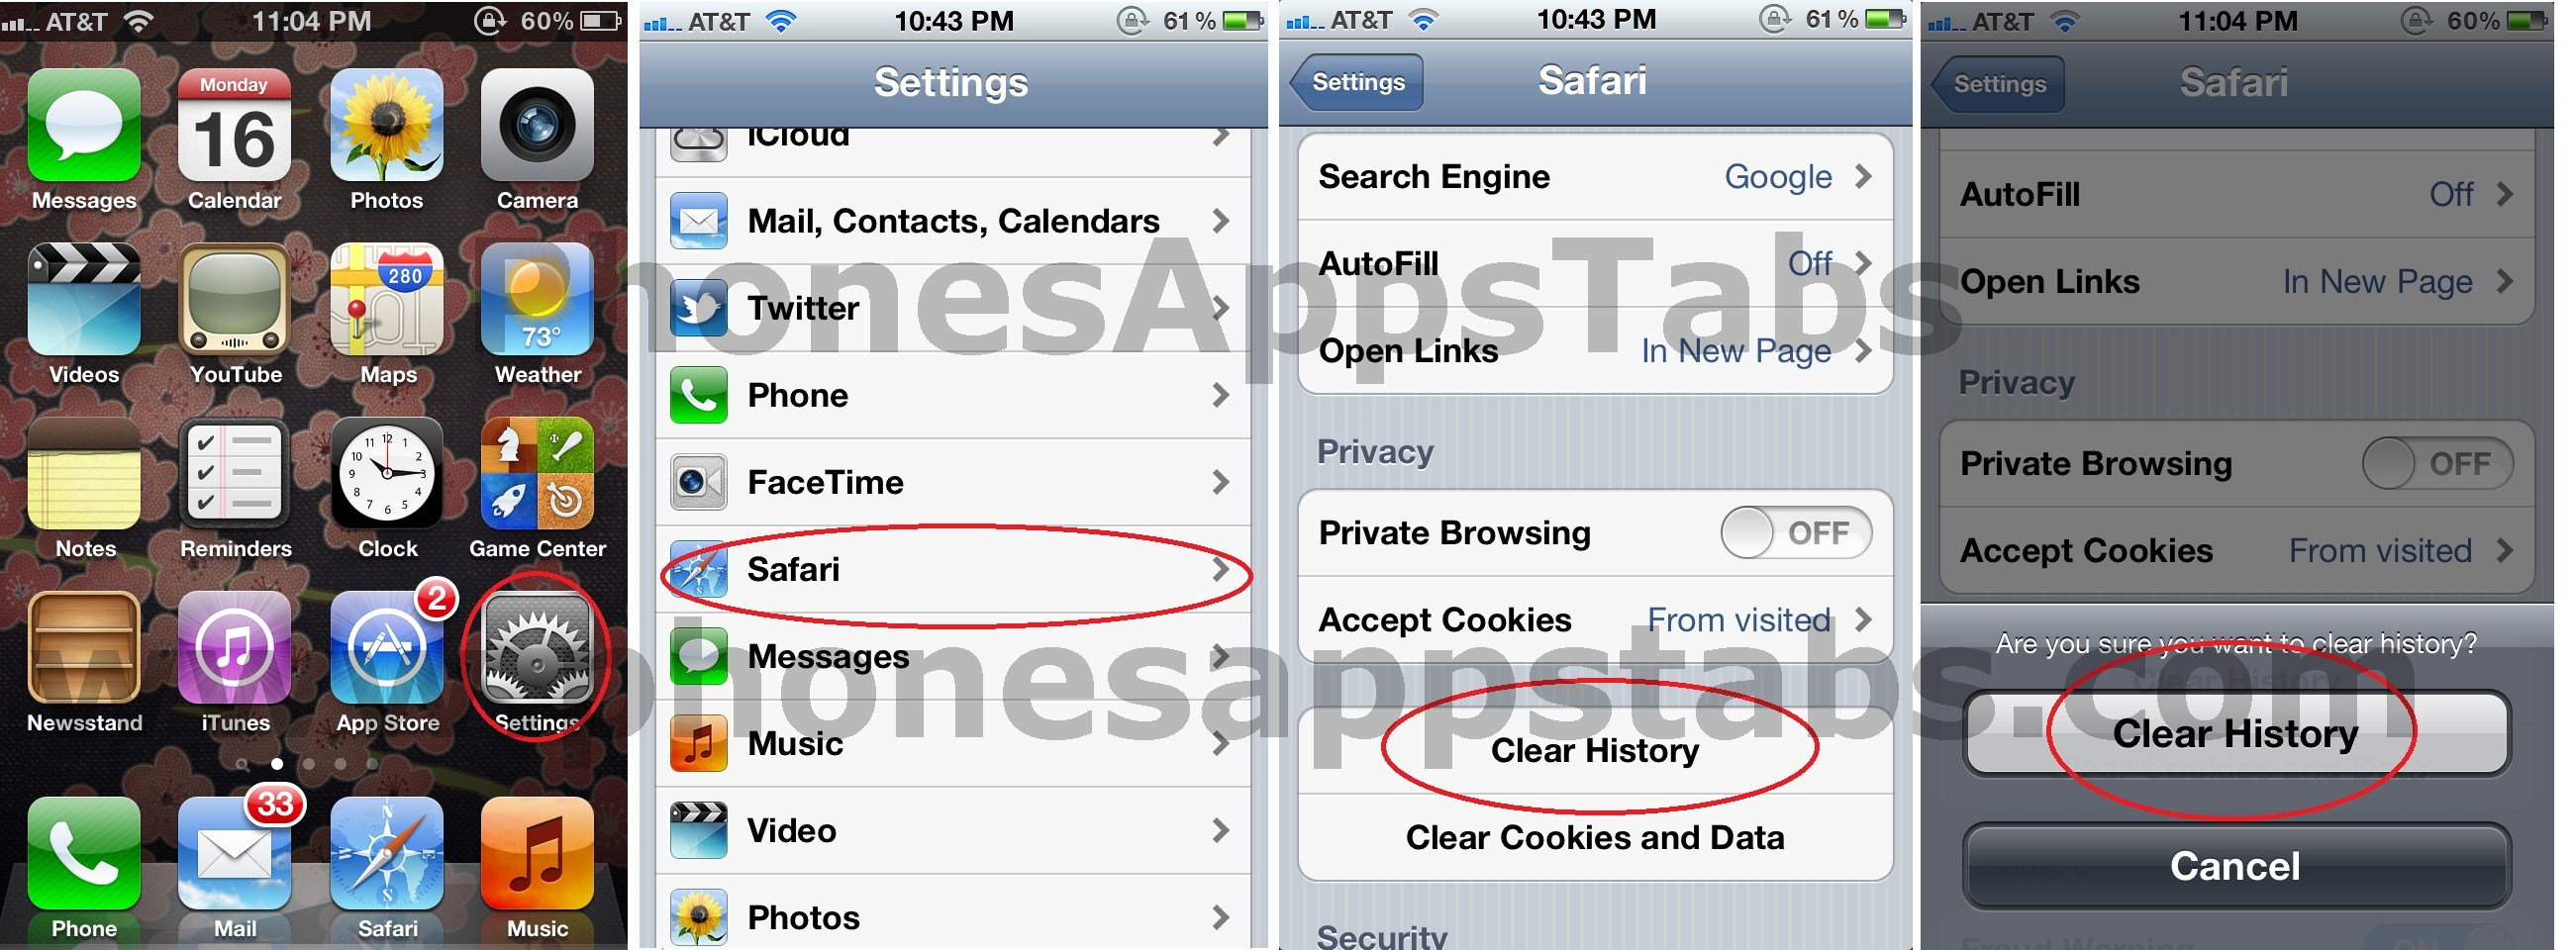 Exceptional Bulk How To Delete Safari Browsing History Iphone Ipad How To Delete Photos From Ipad But Not Iphone How To Delete Photos From Ipad photos How To Delete Photos From Ipad